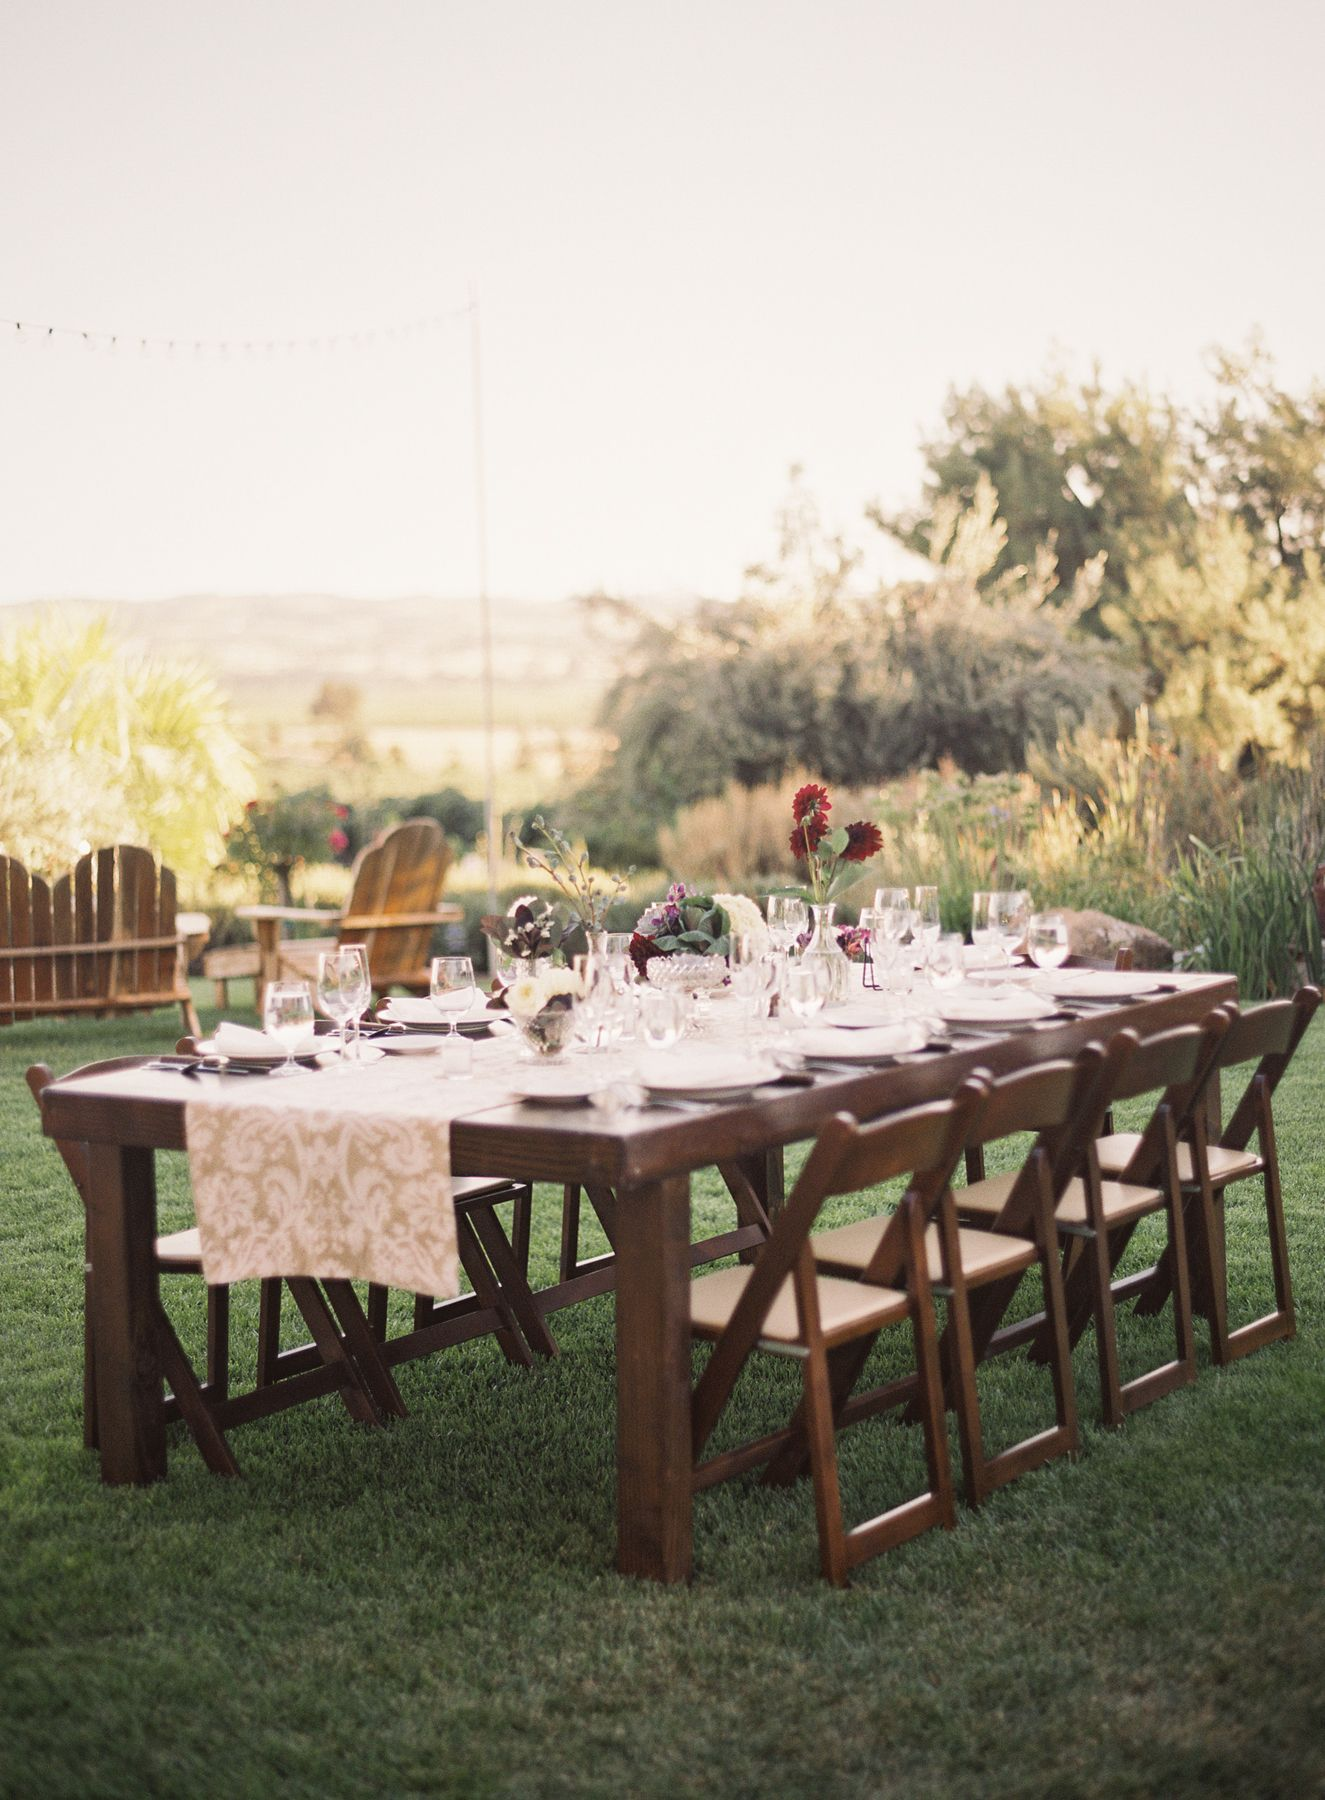 Table And Chair Rental Prices Covers Jf Wedding Gallery San Luis Obispo Reception Dinner Price Of Wooden 65 Chairs 24 Gyc 89 Linens Using Free Tables At The Hall Rentals